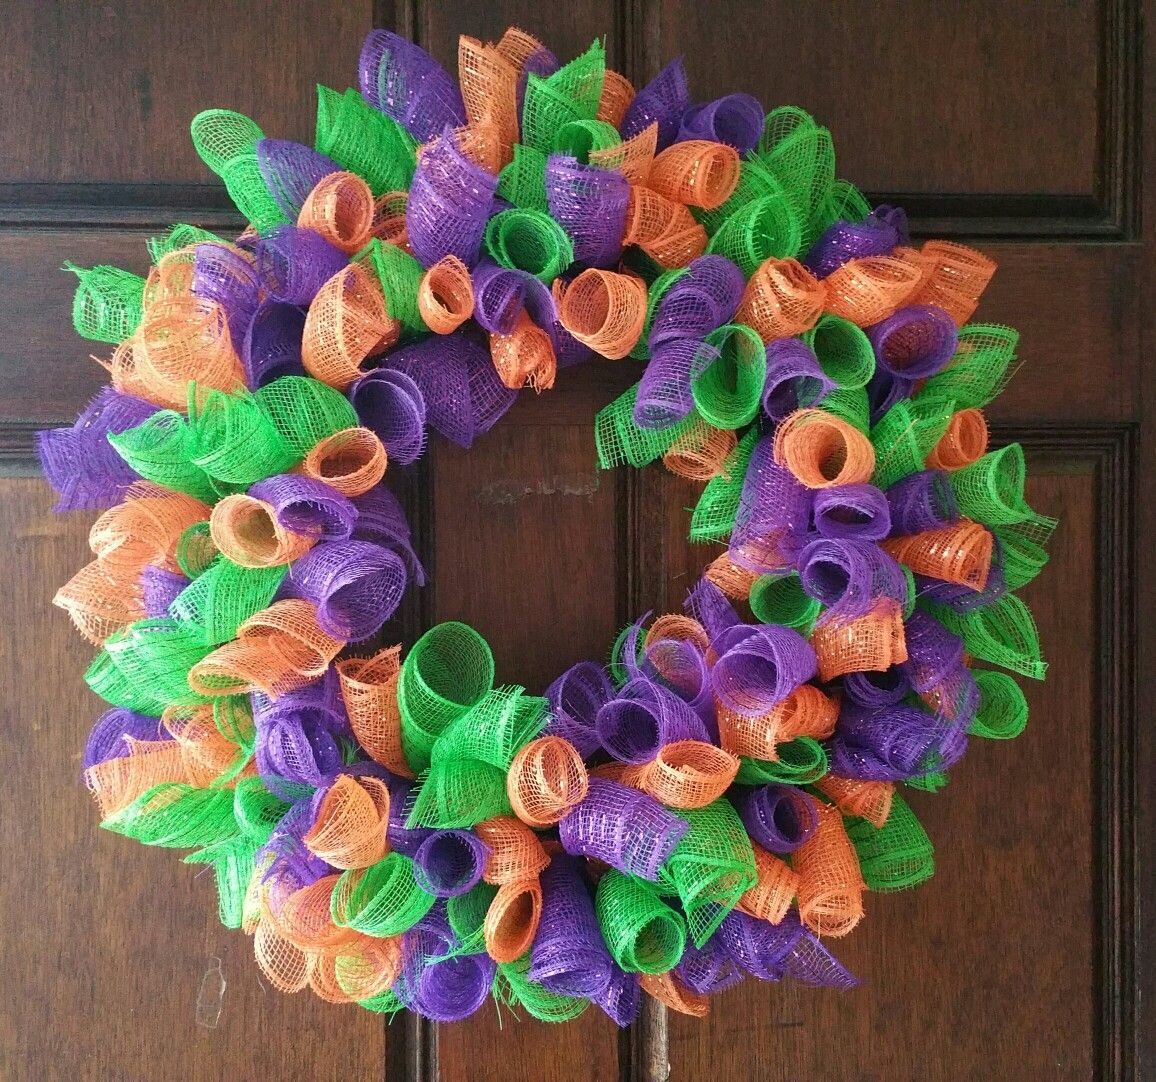 Deco Mesh Wreath Made By Me From Dollar Tree Items Diy